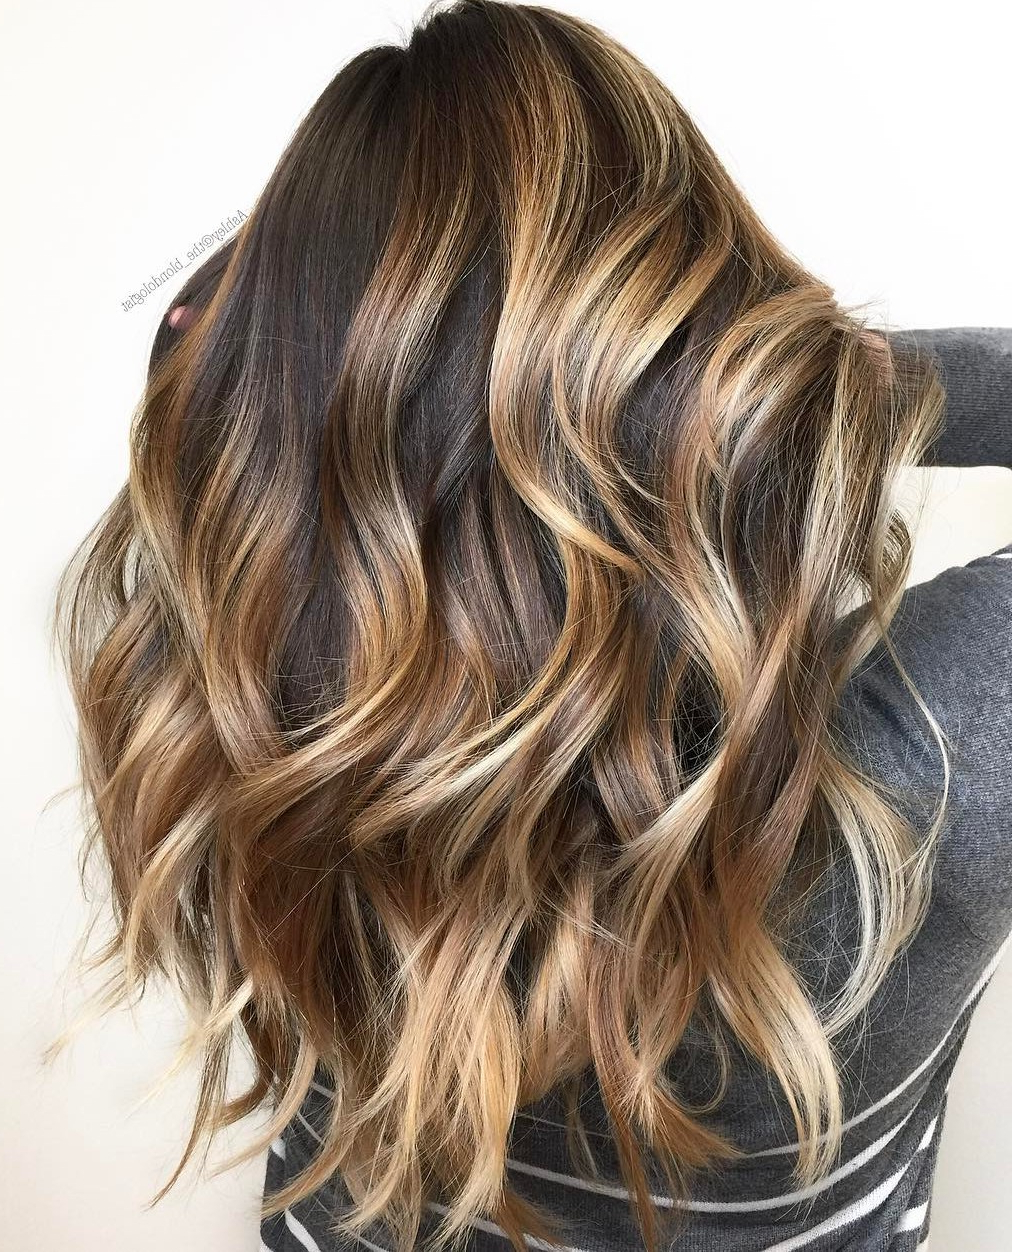 20 Head Turning Haircuts And Hairstyles For Long Thick Hair With Well Known Balayage Hairstyles For Long Layers (View 5 of 20)